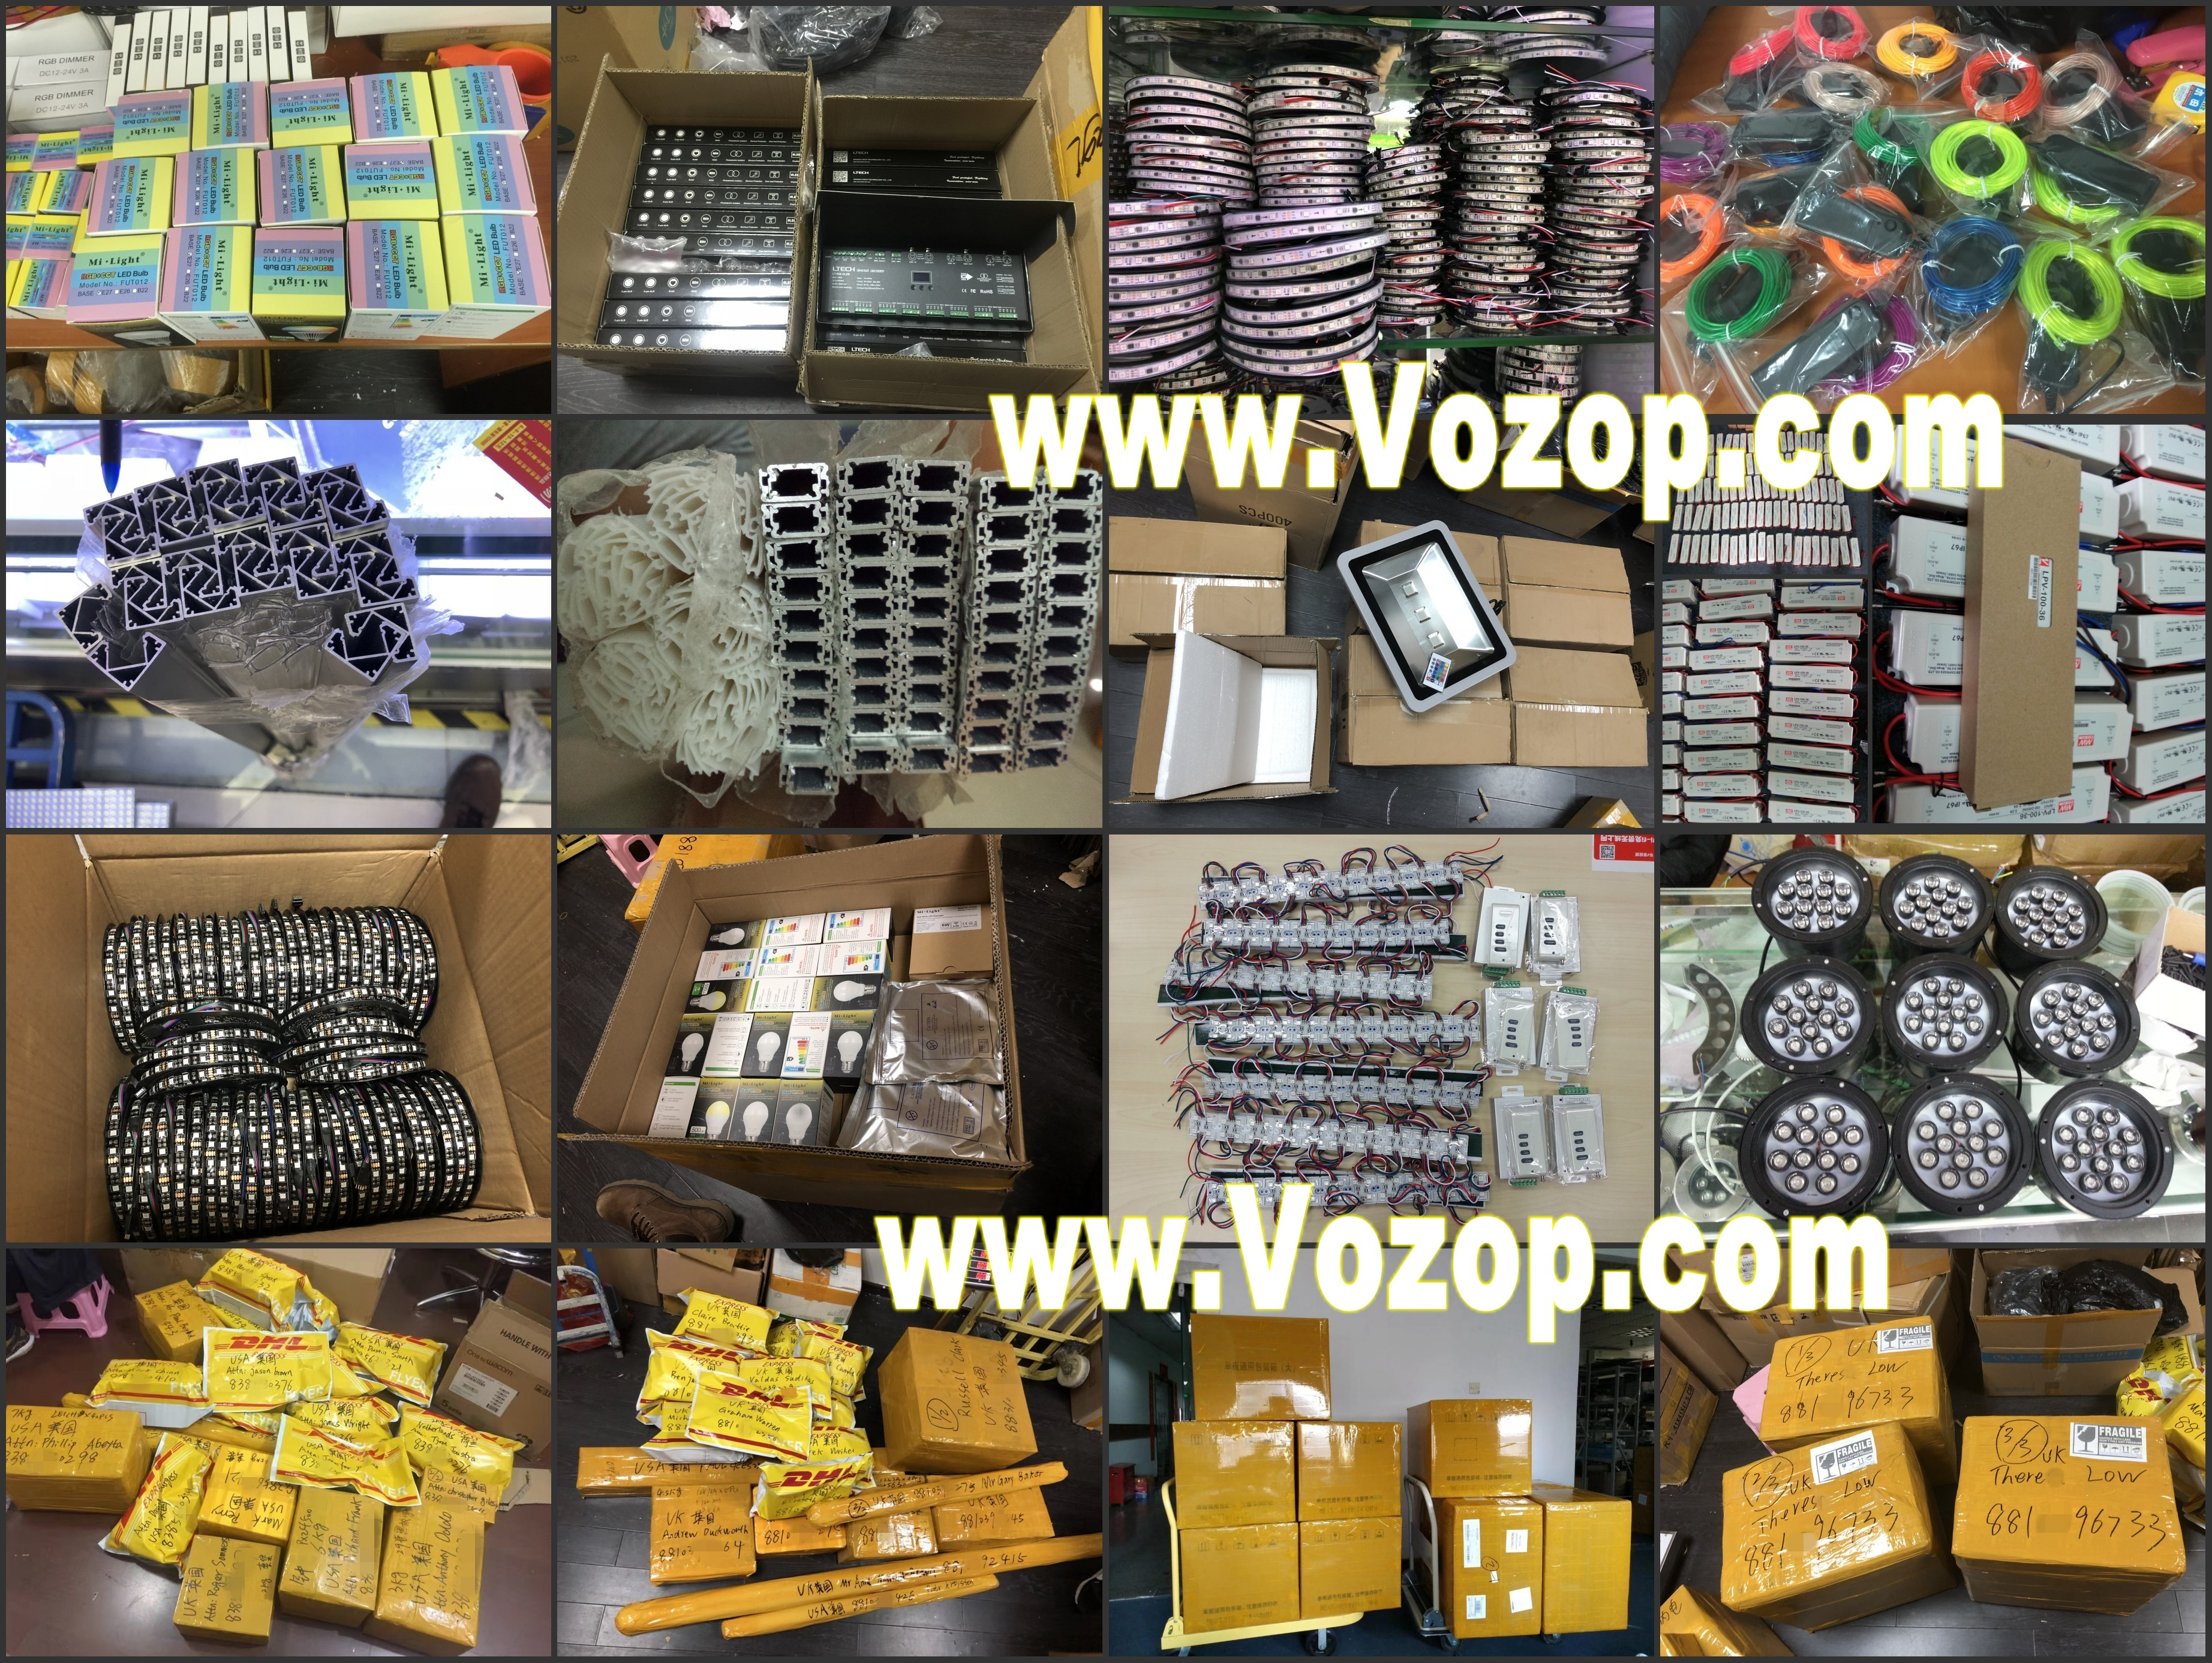 vozop_quick_LED_lights_products_shipping_to_USA_UK_europe_factory